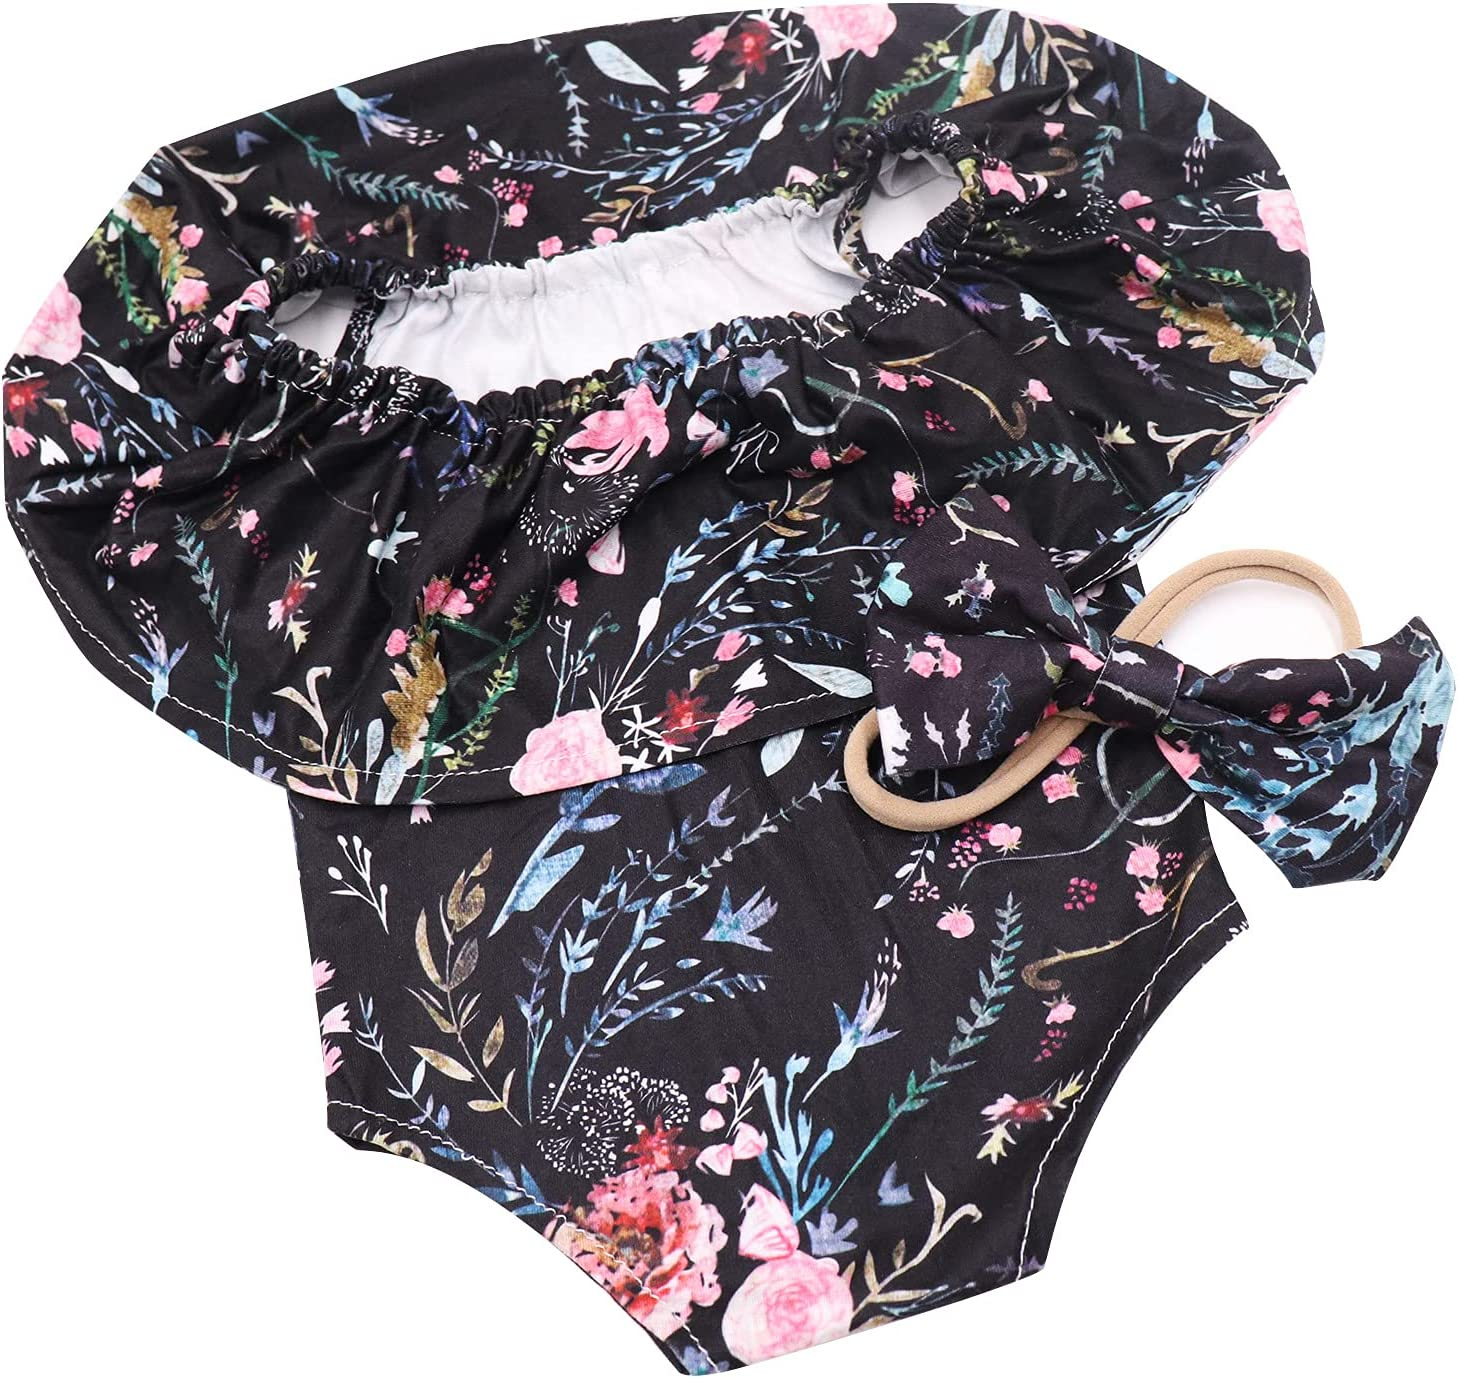 Newborn Girl Photography Prop Black Floral Romper with Matching Bowtie Playsuit Headband Outfits